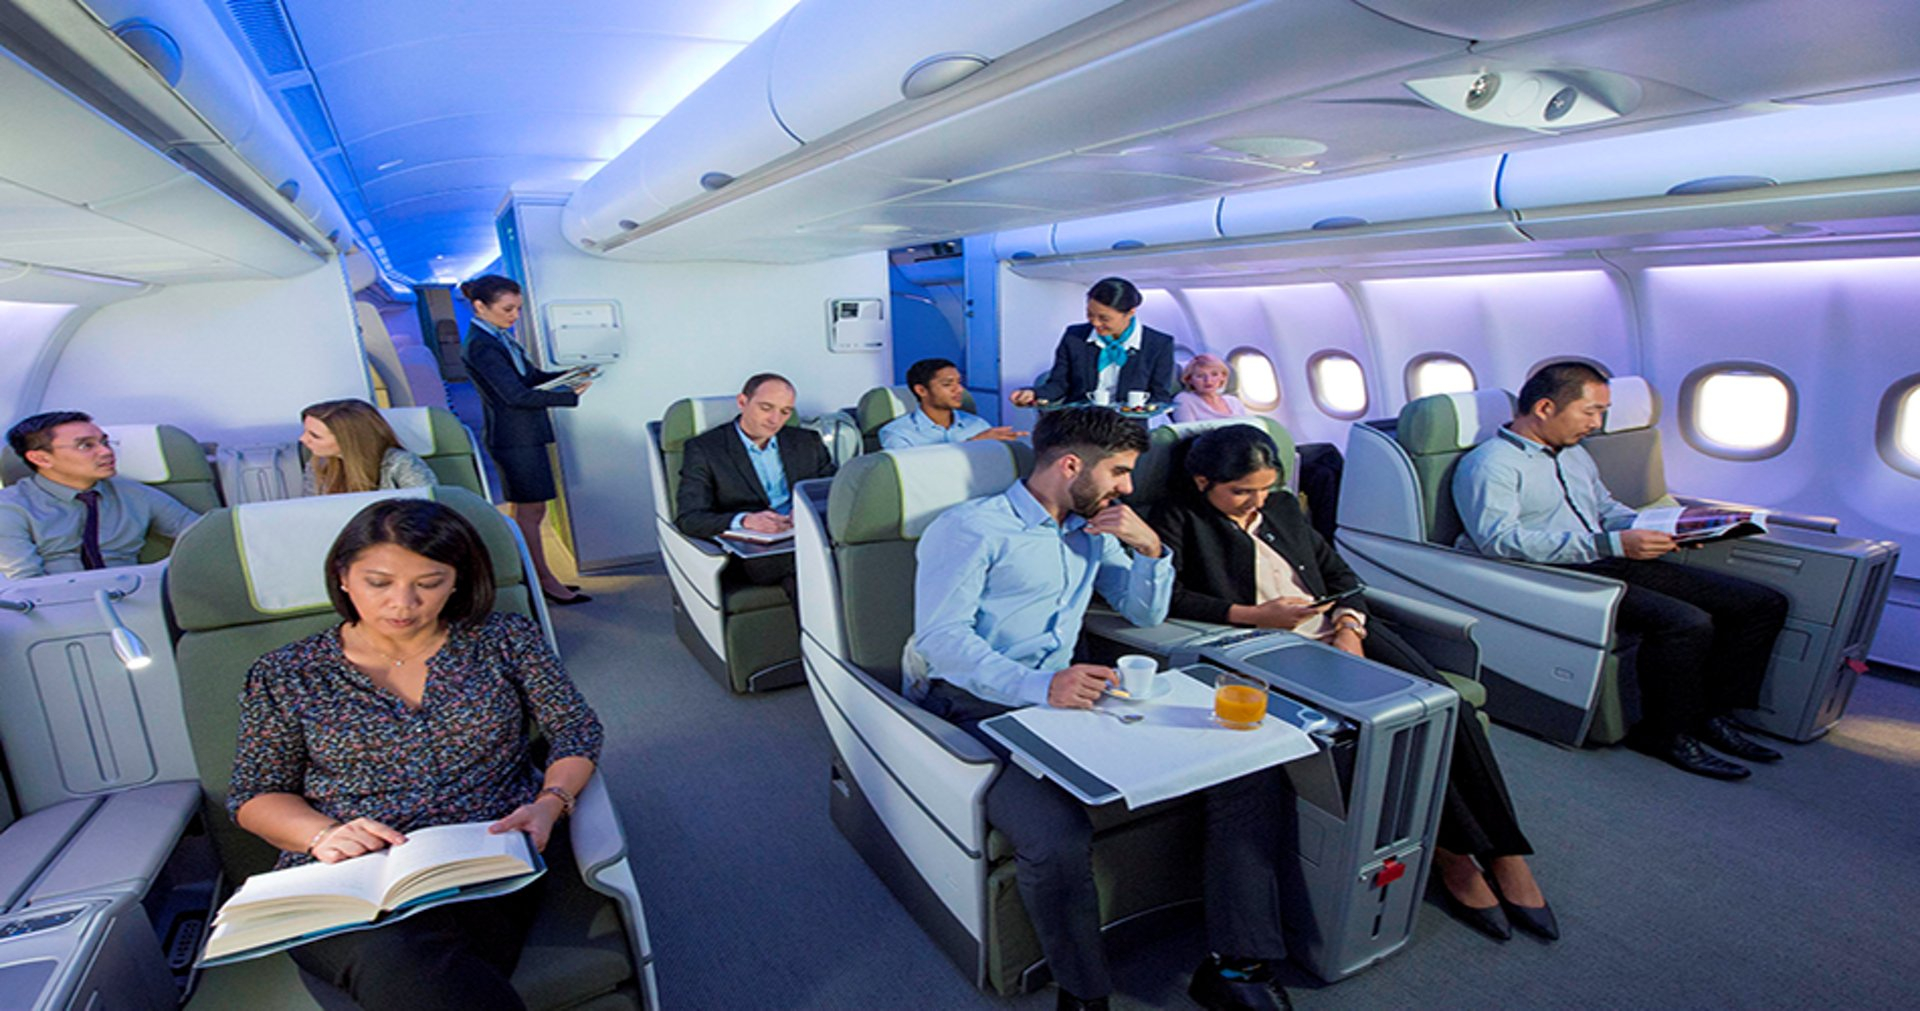 A stand-alone system that enhances prevention onboard for both your passengers and crew members from A320 Family to A380.